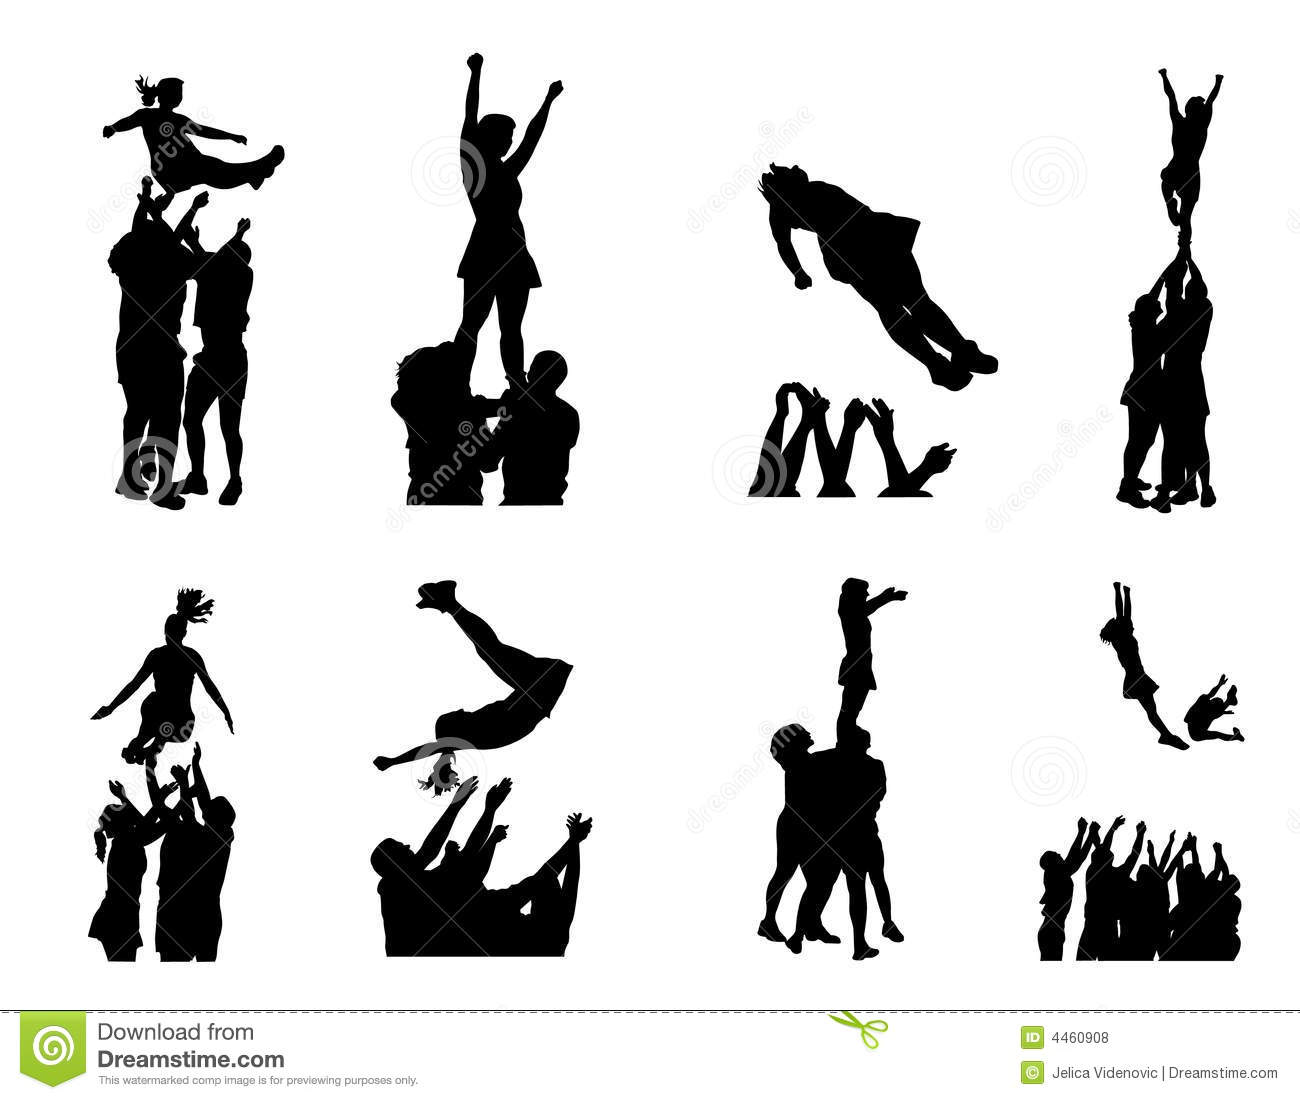 Cheer Toe Touch Silhouette Cheerleader silhouette images